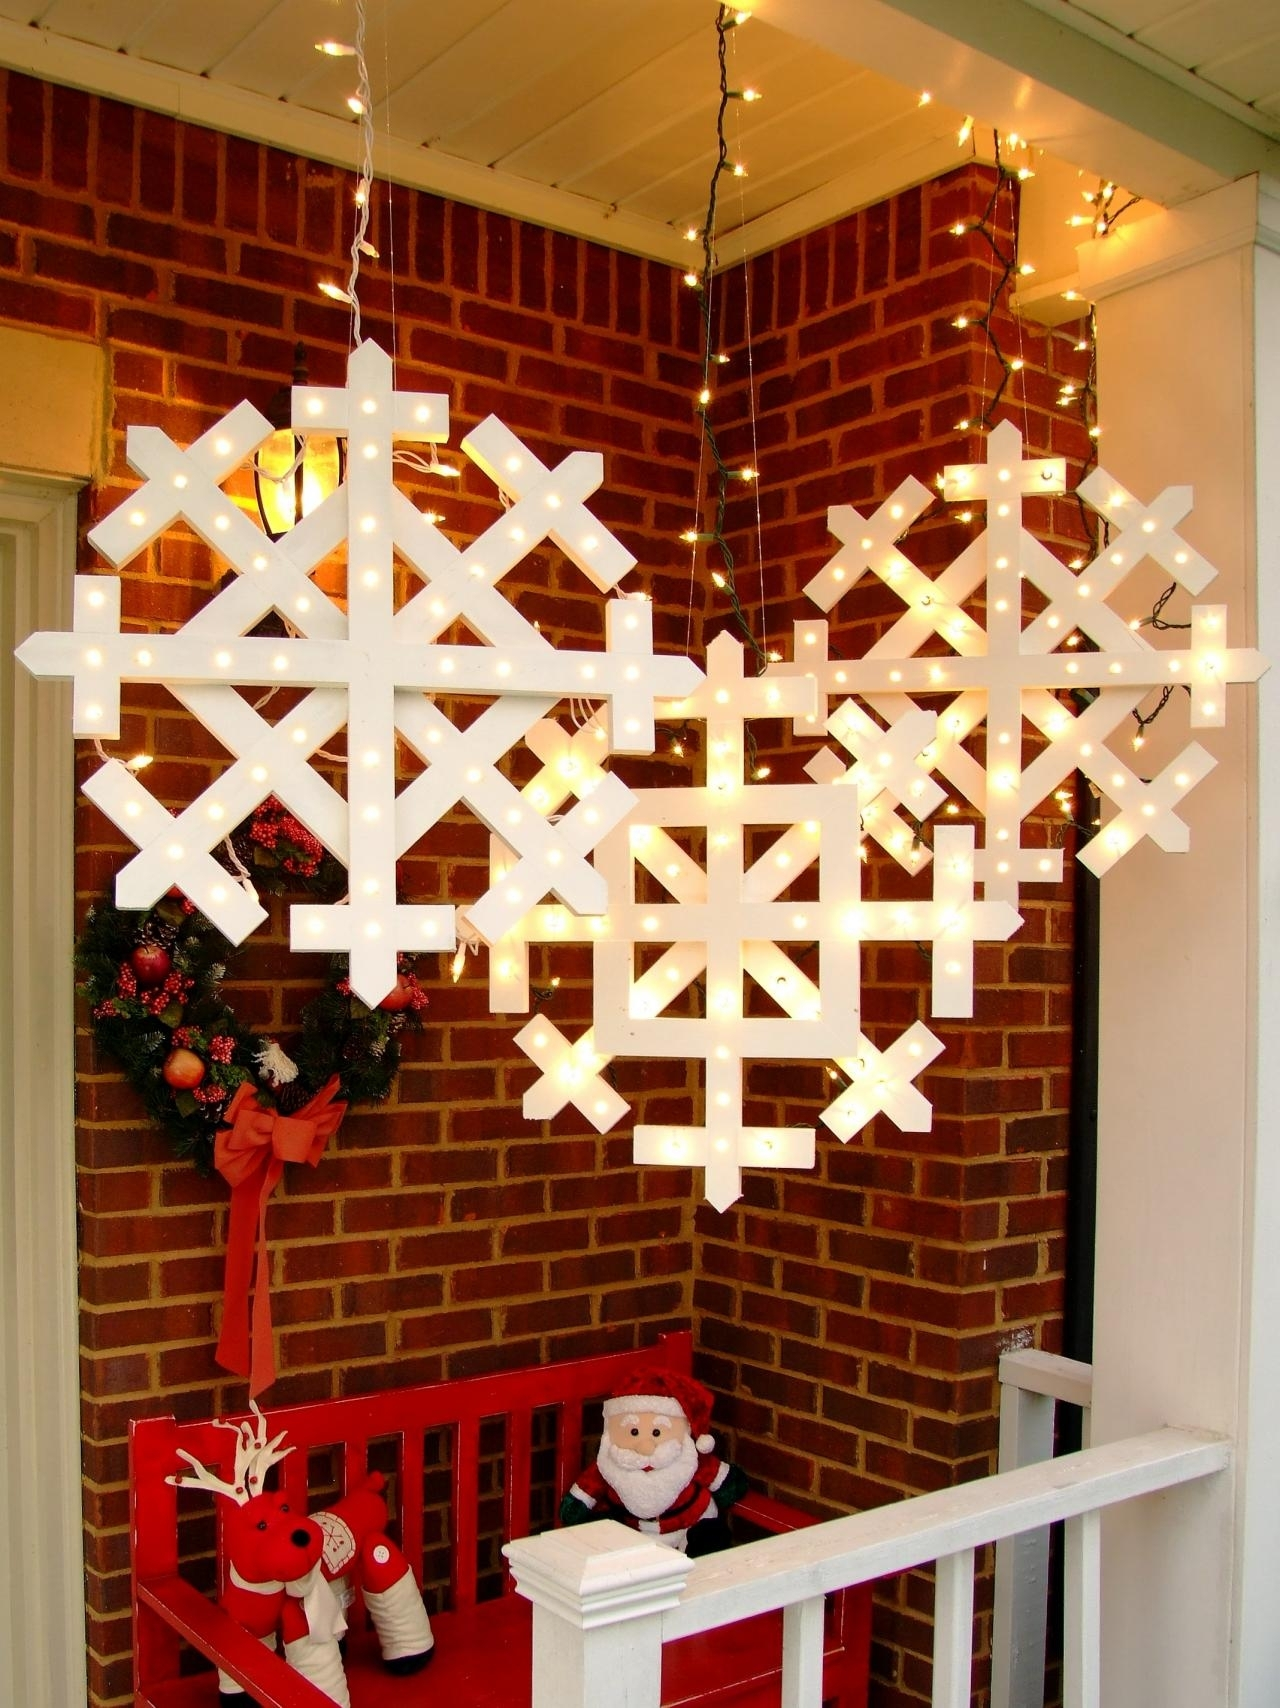 How To Make Wooden Snowflakes With Lights | How Tos | Diy Throughout Outdoor Hanging Snowflake Lights (#6 of 15)